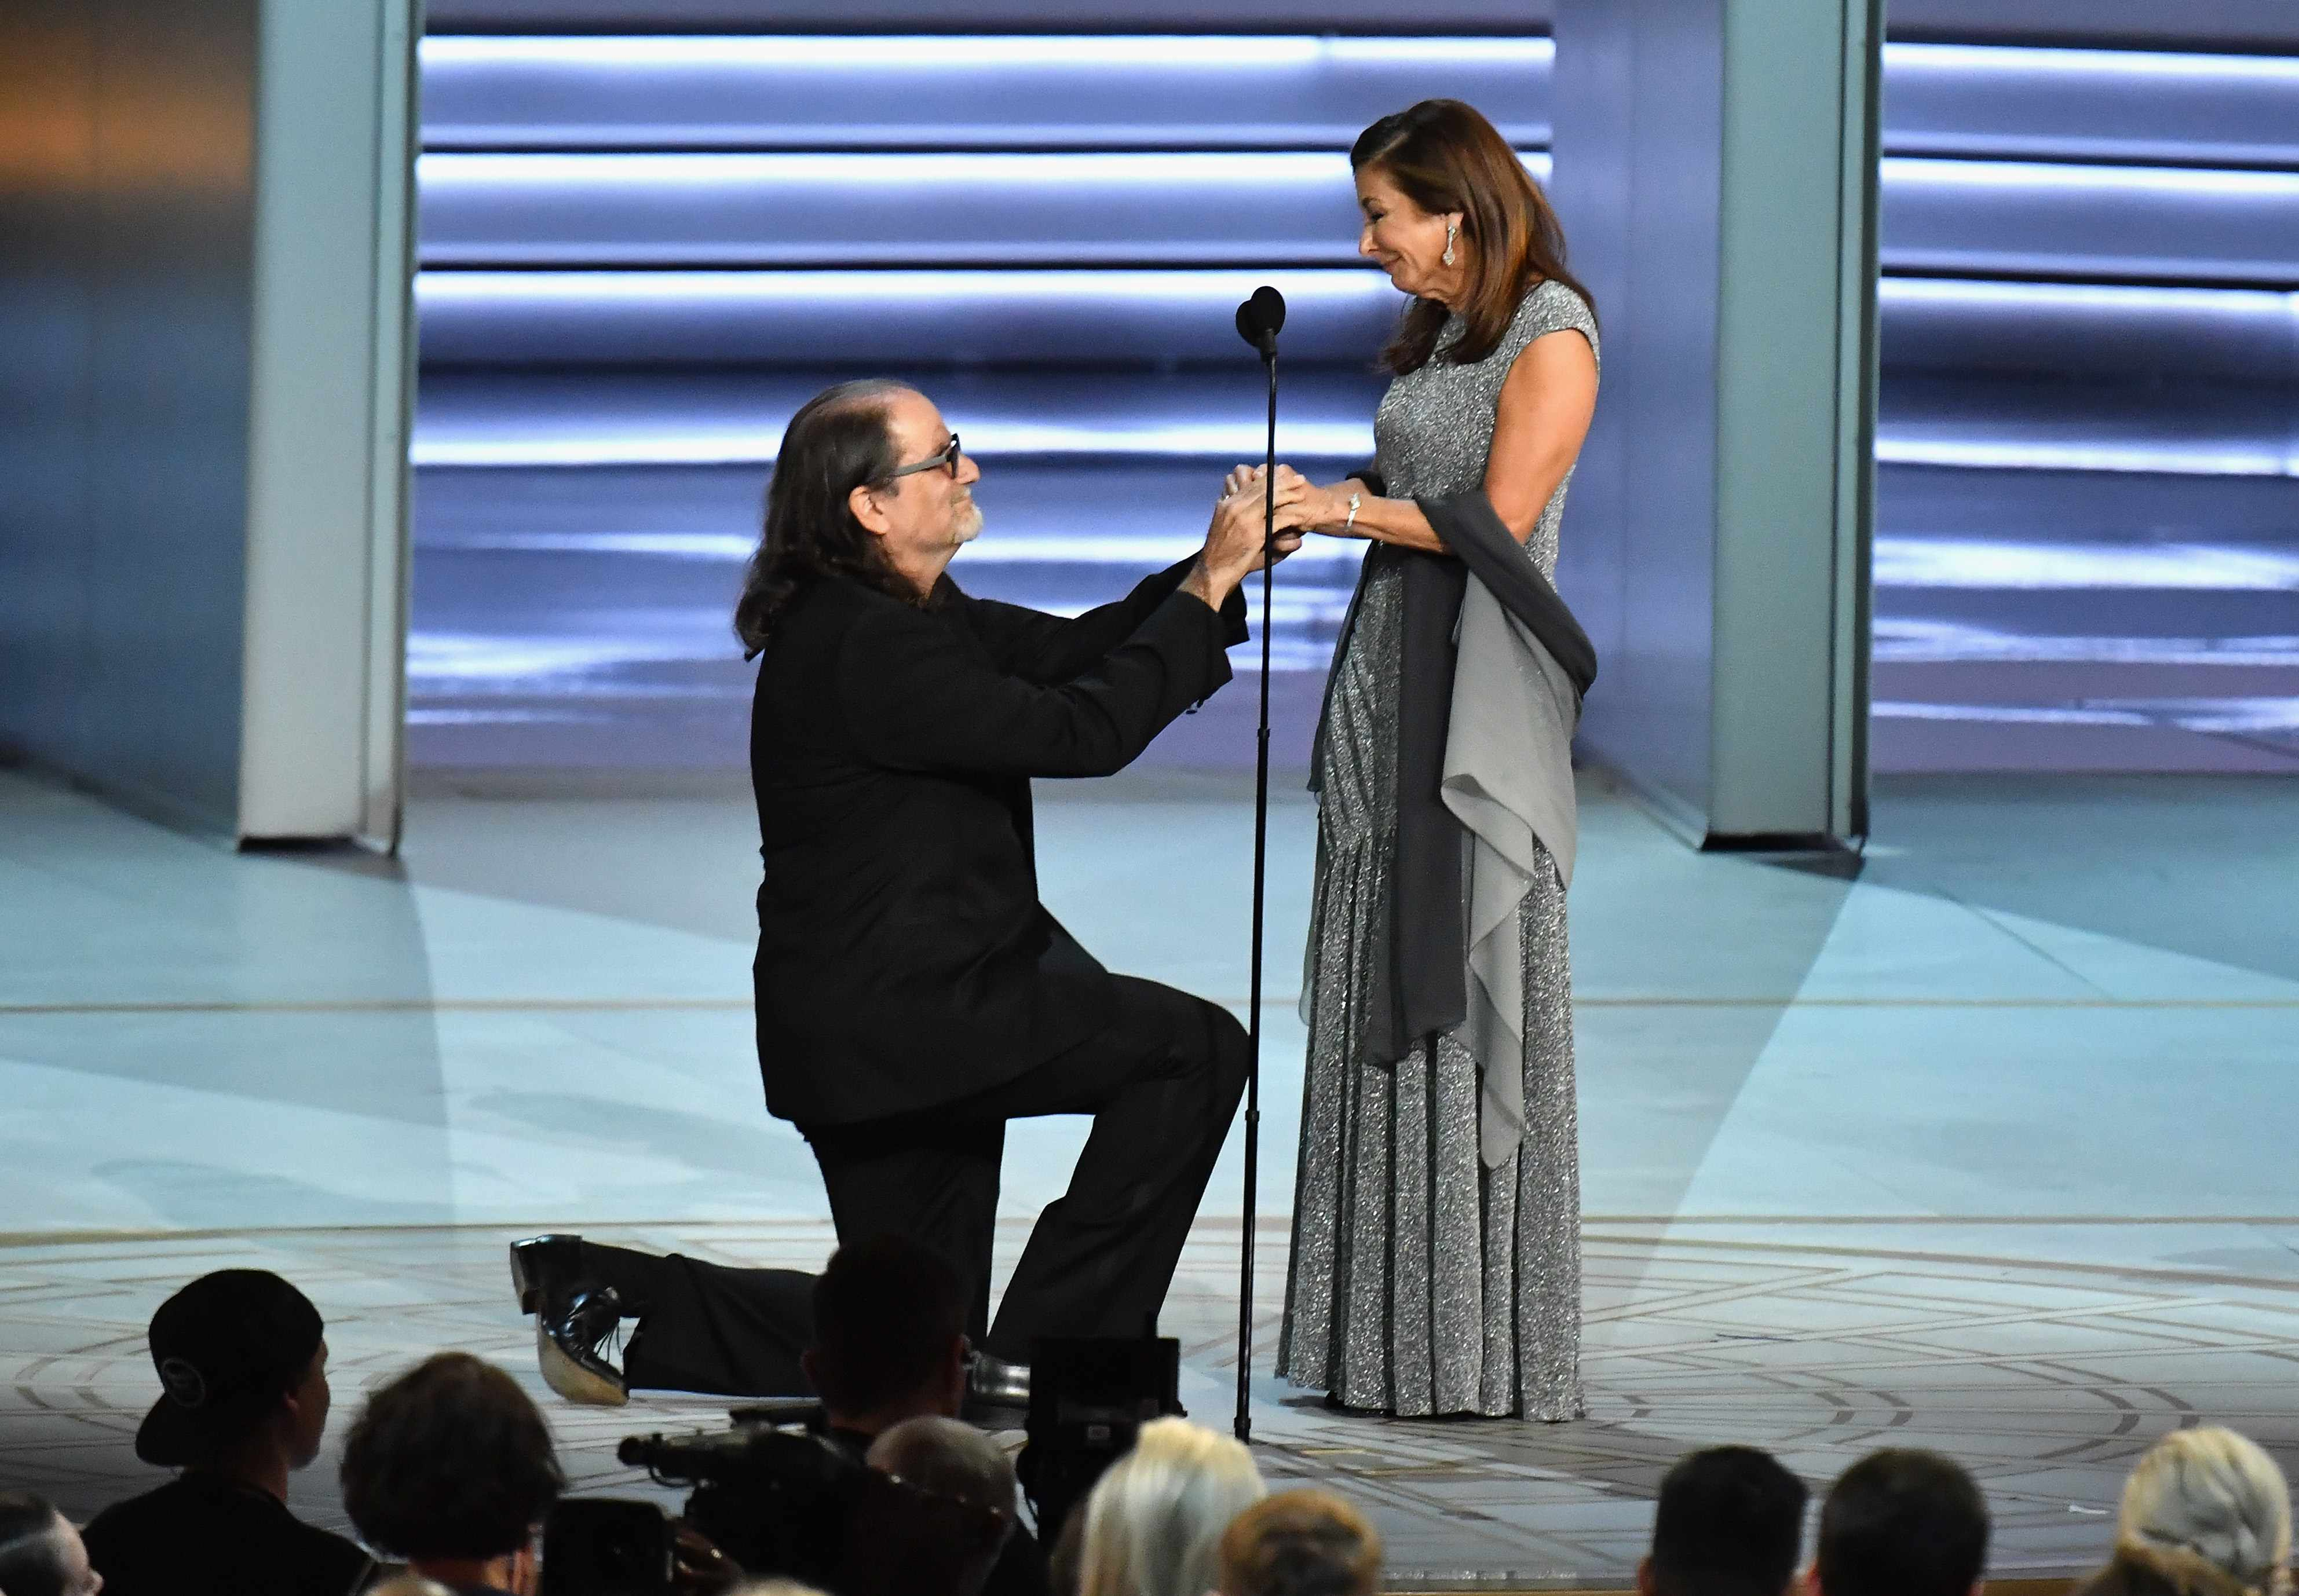 LOS ANGELES, CA - SEPTEMBER 17:  Glenn Weiss (L), winner of the Outstanding Directing for a Variety Special award for 'The Oscars,' proposes marriage to Jan Svendsen onstage during the 70th Emmy Awards at Microsoft Theater on September 17, 2018 in Los Angeles, California.  (Photo by Jeff Kravitz/FilmMagic)  TL